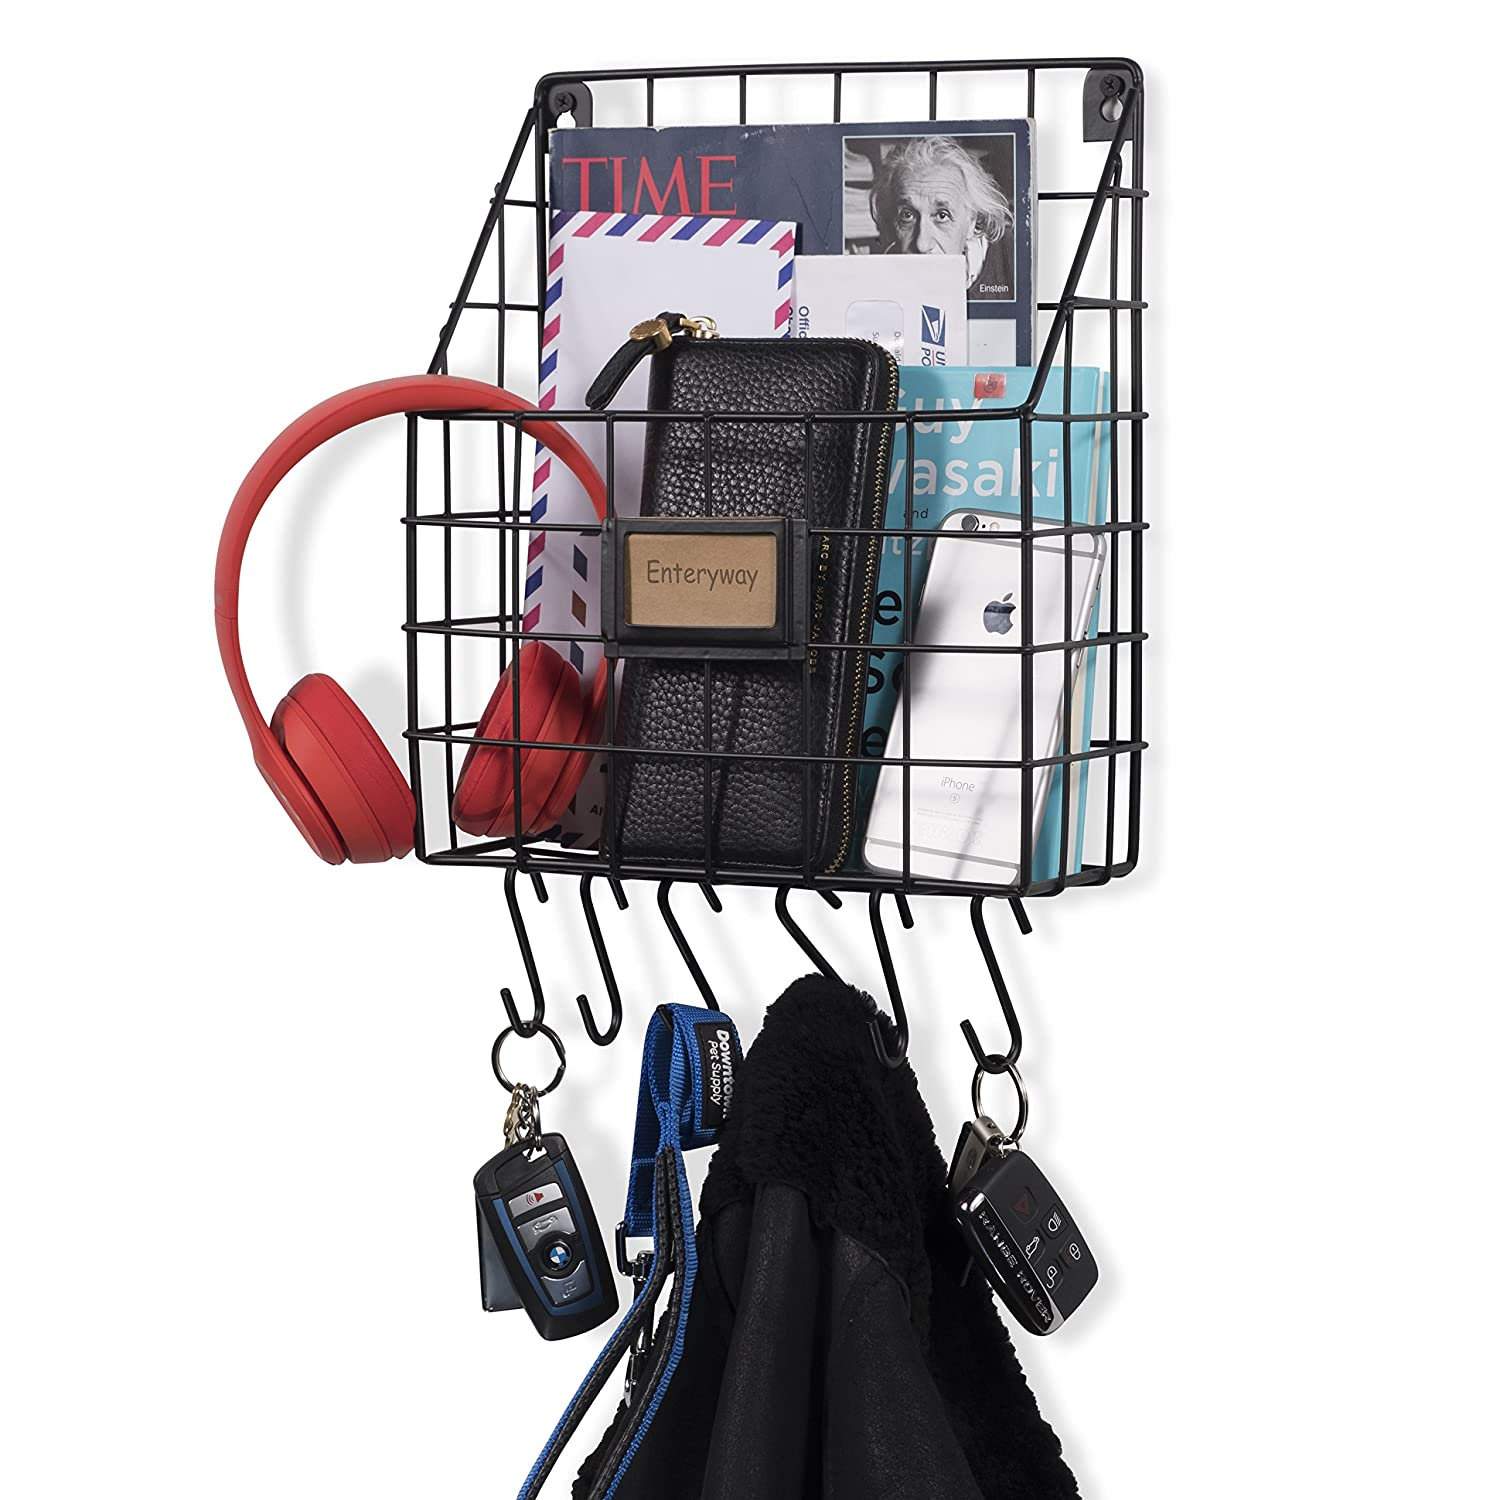 Wall35 Multipurpose Mail Organizer Wire Basket Wall Mounted with S Hooks Magazine Holder Coat Rack Foyer Storage with Key Hooks for Kitchen Entryway and Garage Black